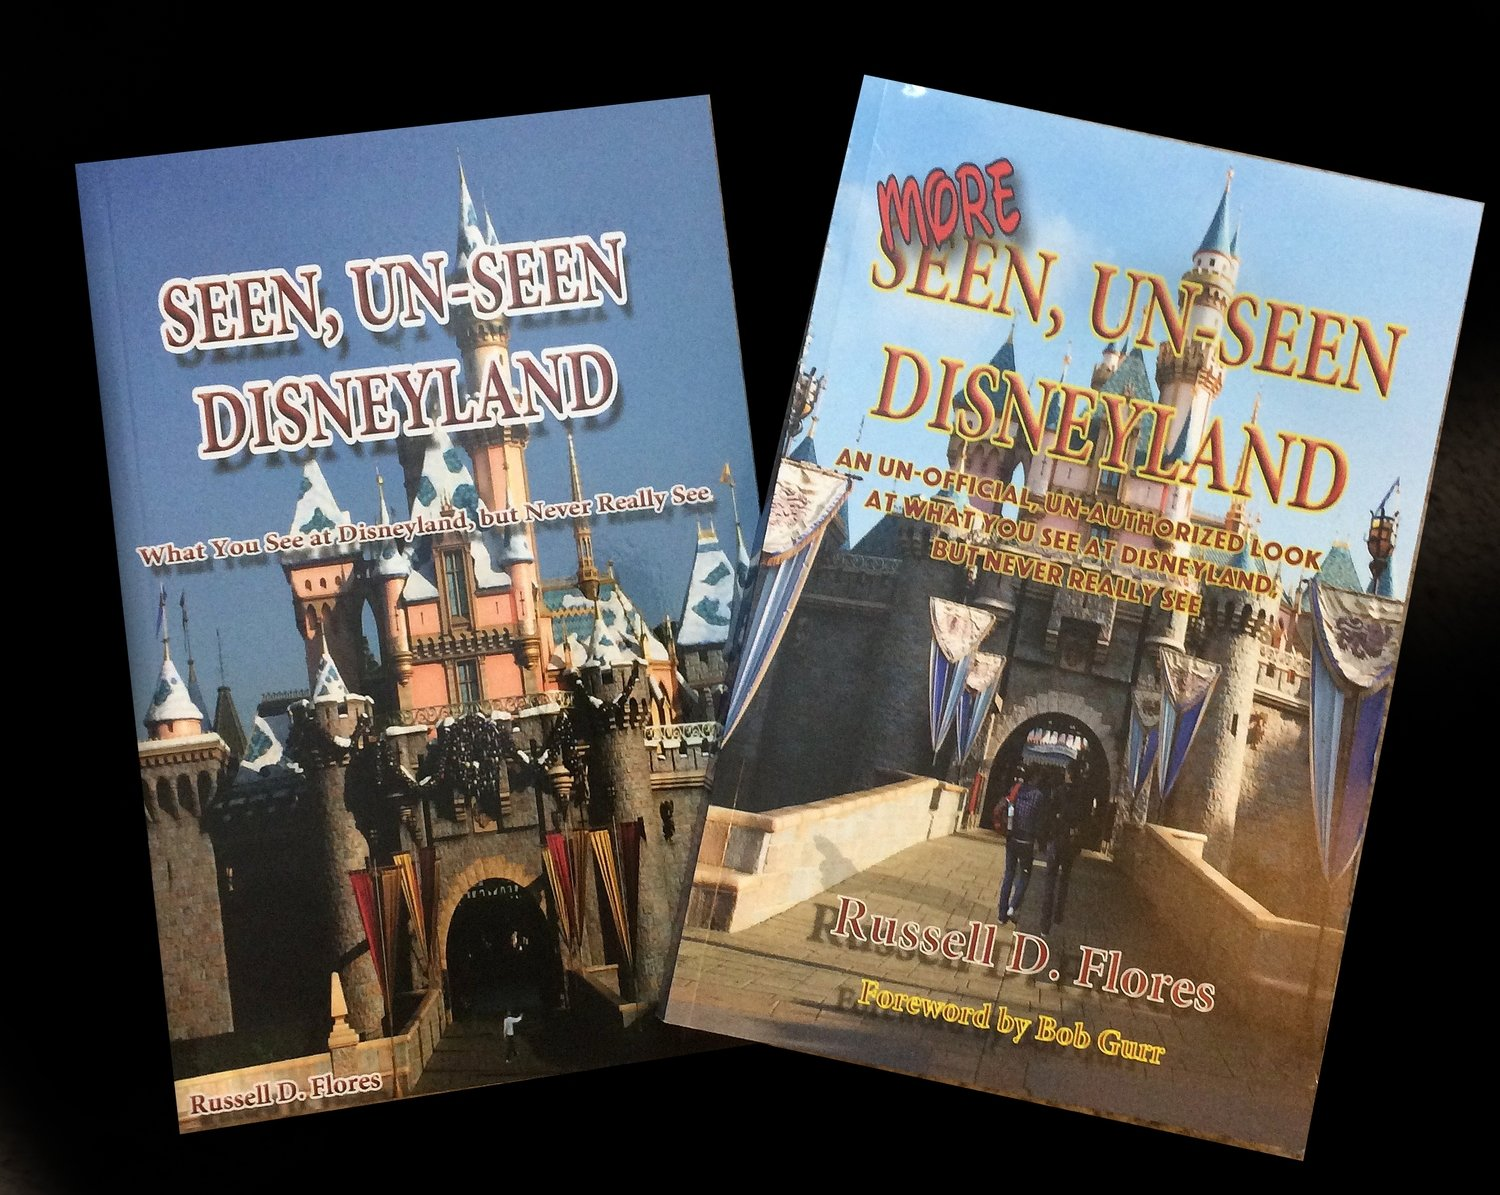 Both Seen and More Seen Un-Seen Disnyeland Books  (Autographed / Regulary $41.90 in stores)